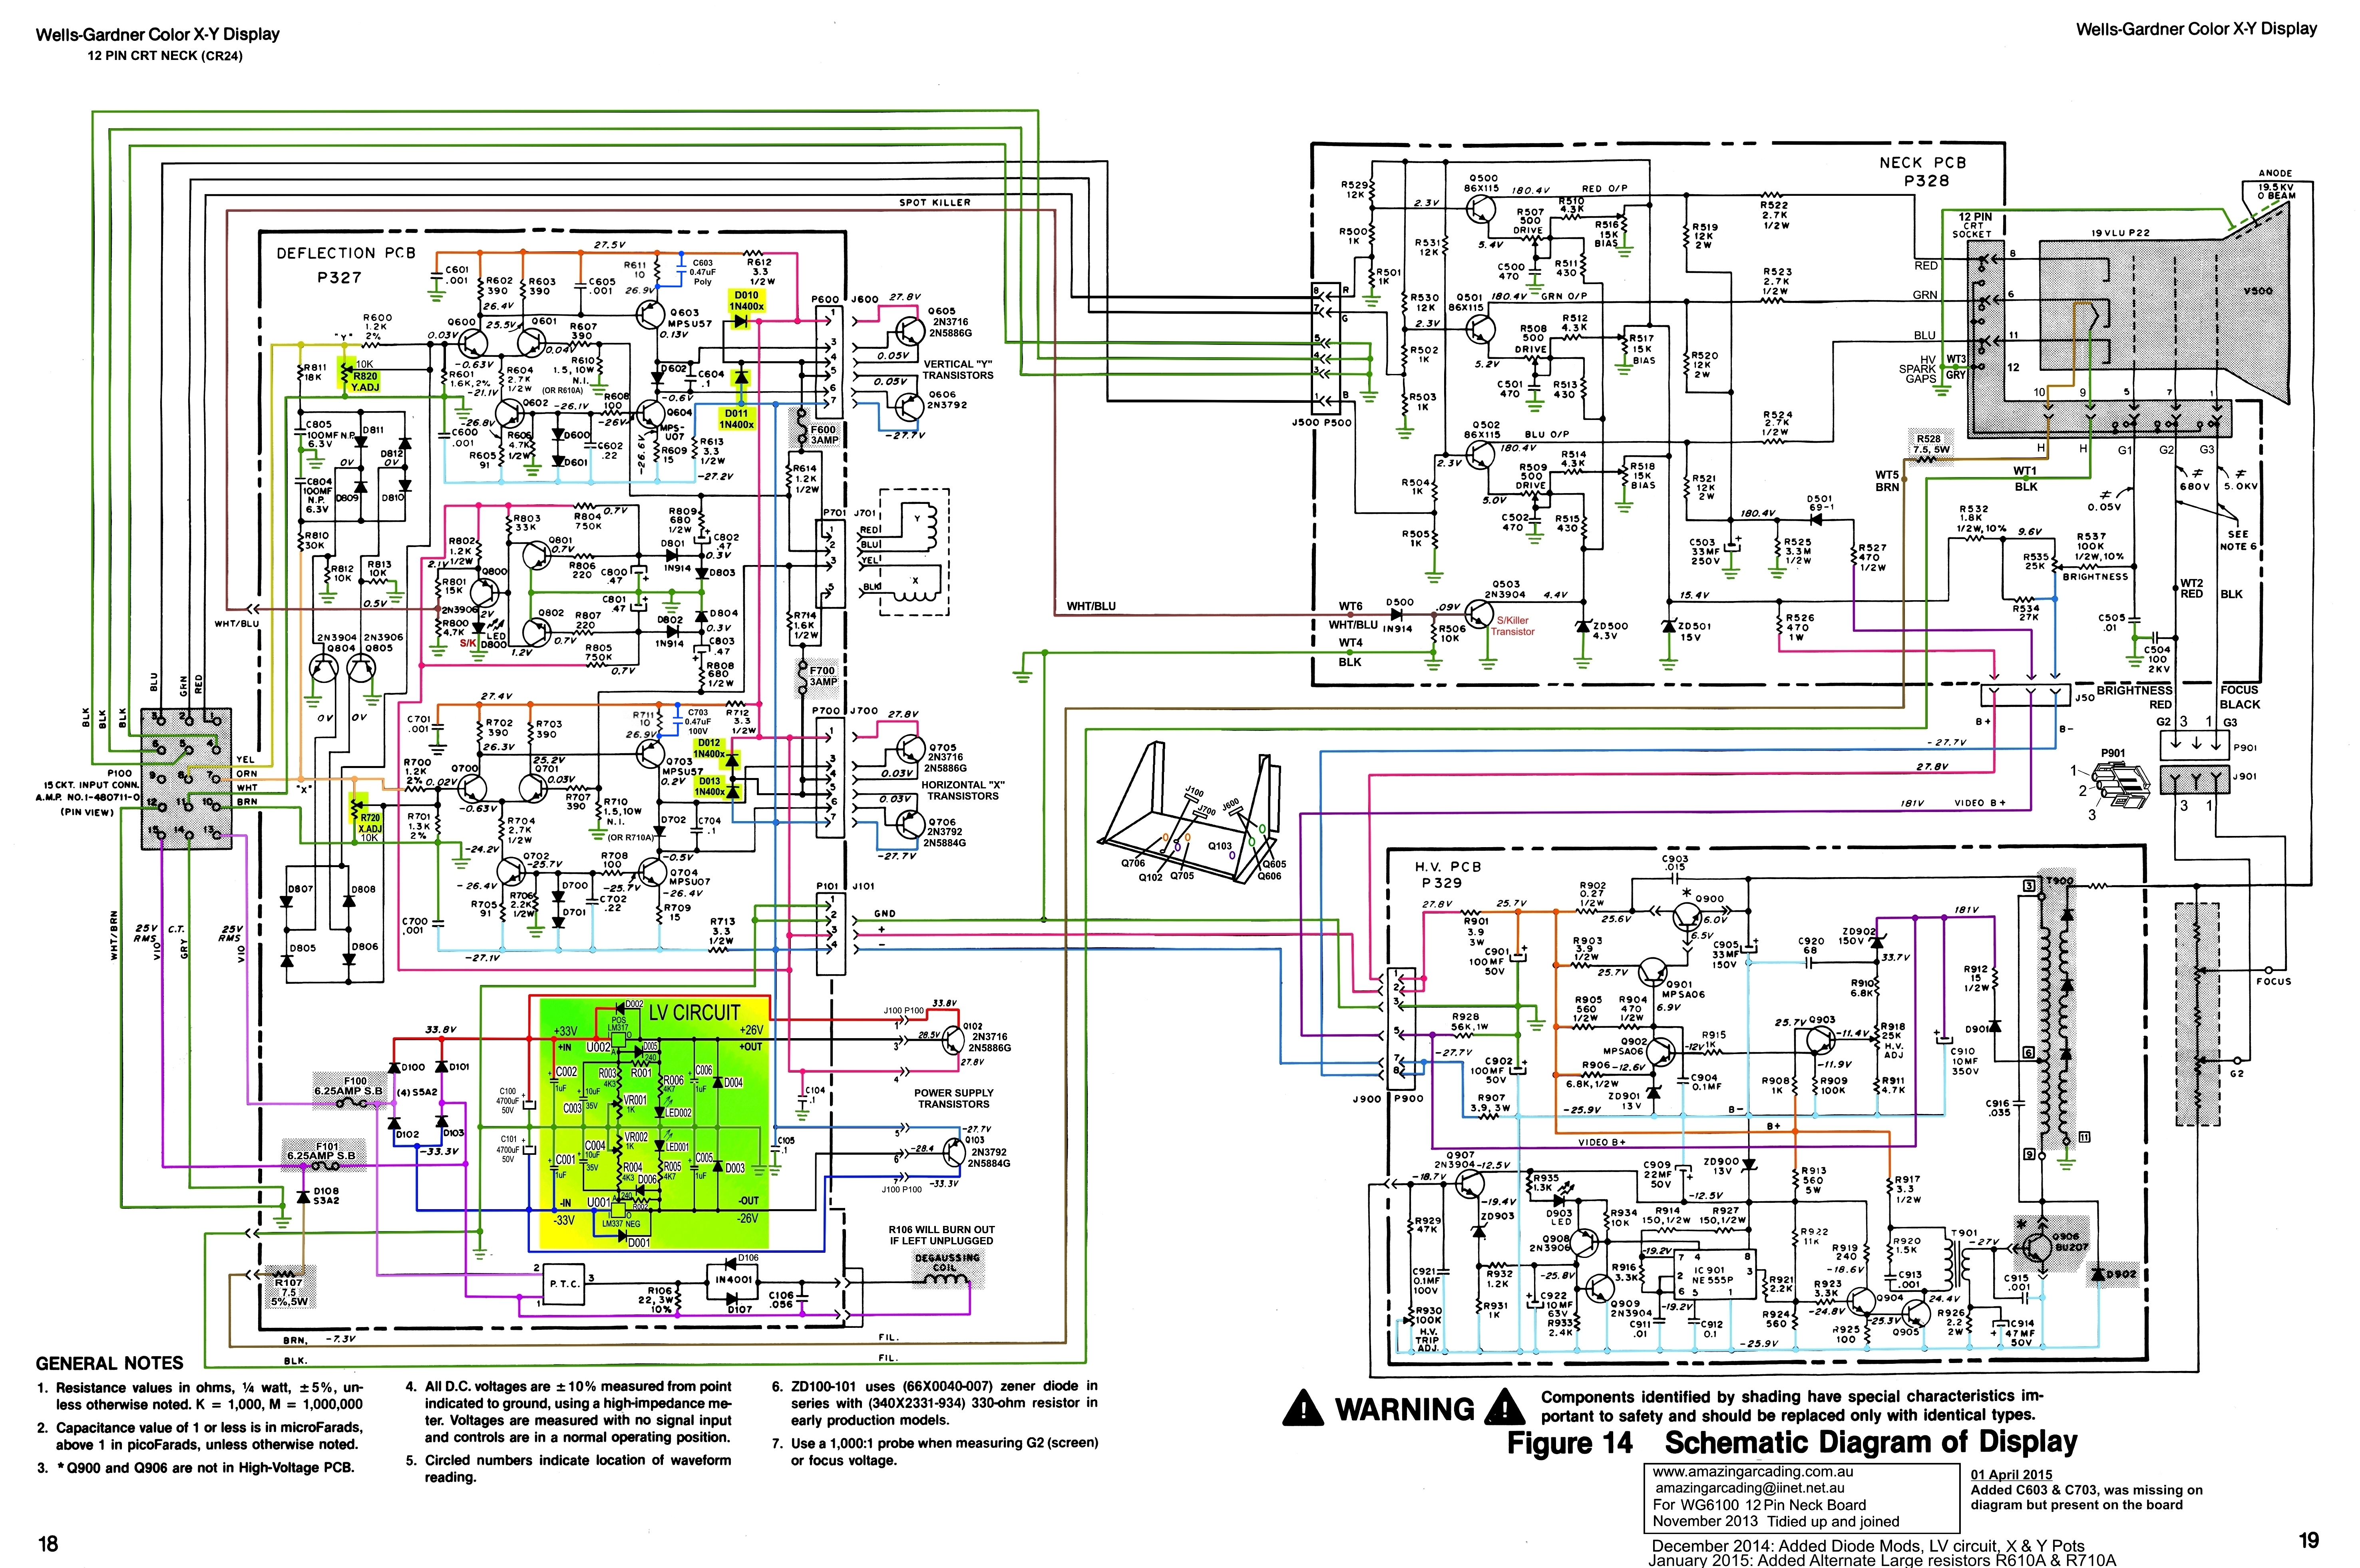 Dezbazs Wg6100 Monitor Page Crt Diagram Color Version Of This